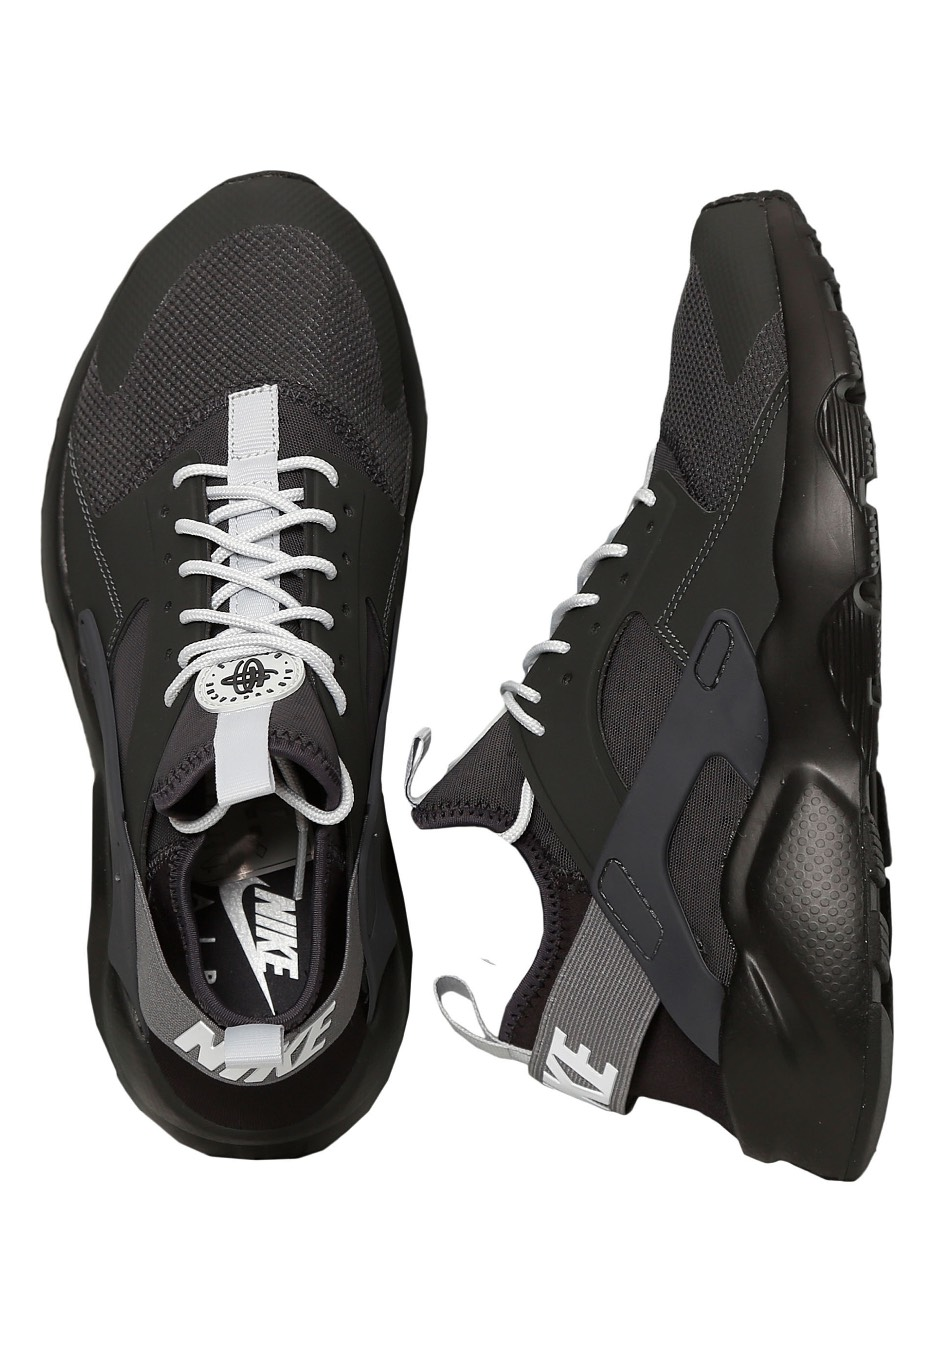 5300c0579398d Nike - Air Huarache Run Ultra Anthracite Black Black White - Shoes -  Impericon.com Worldwide